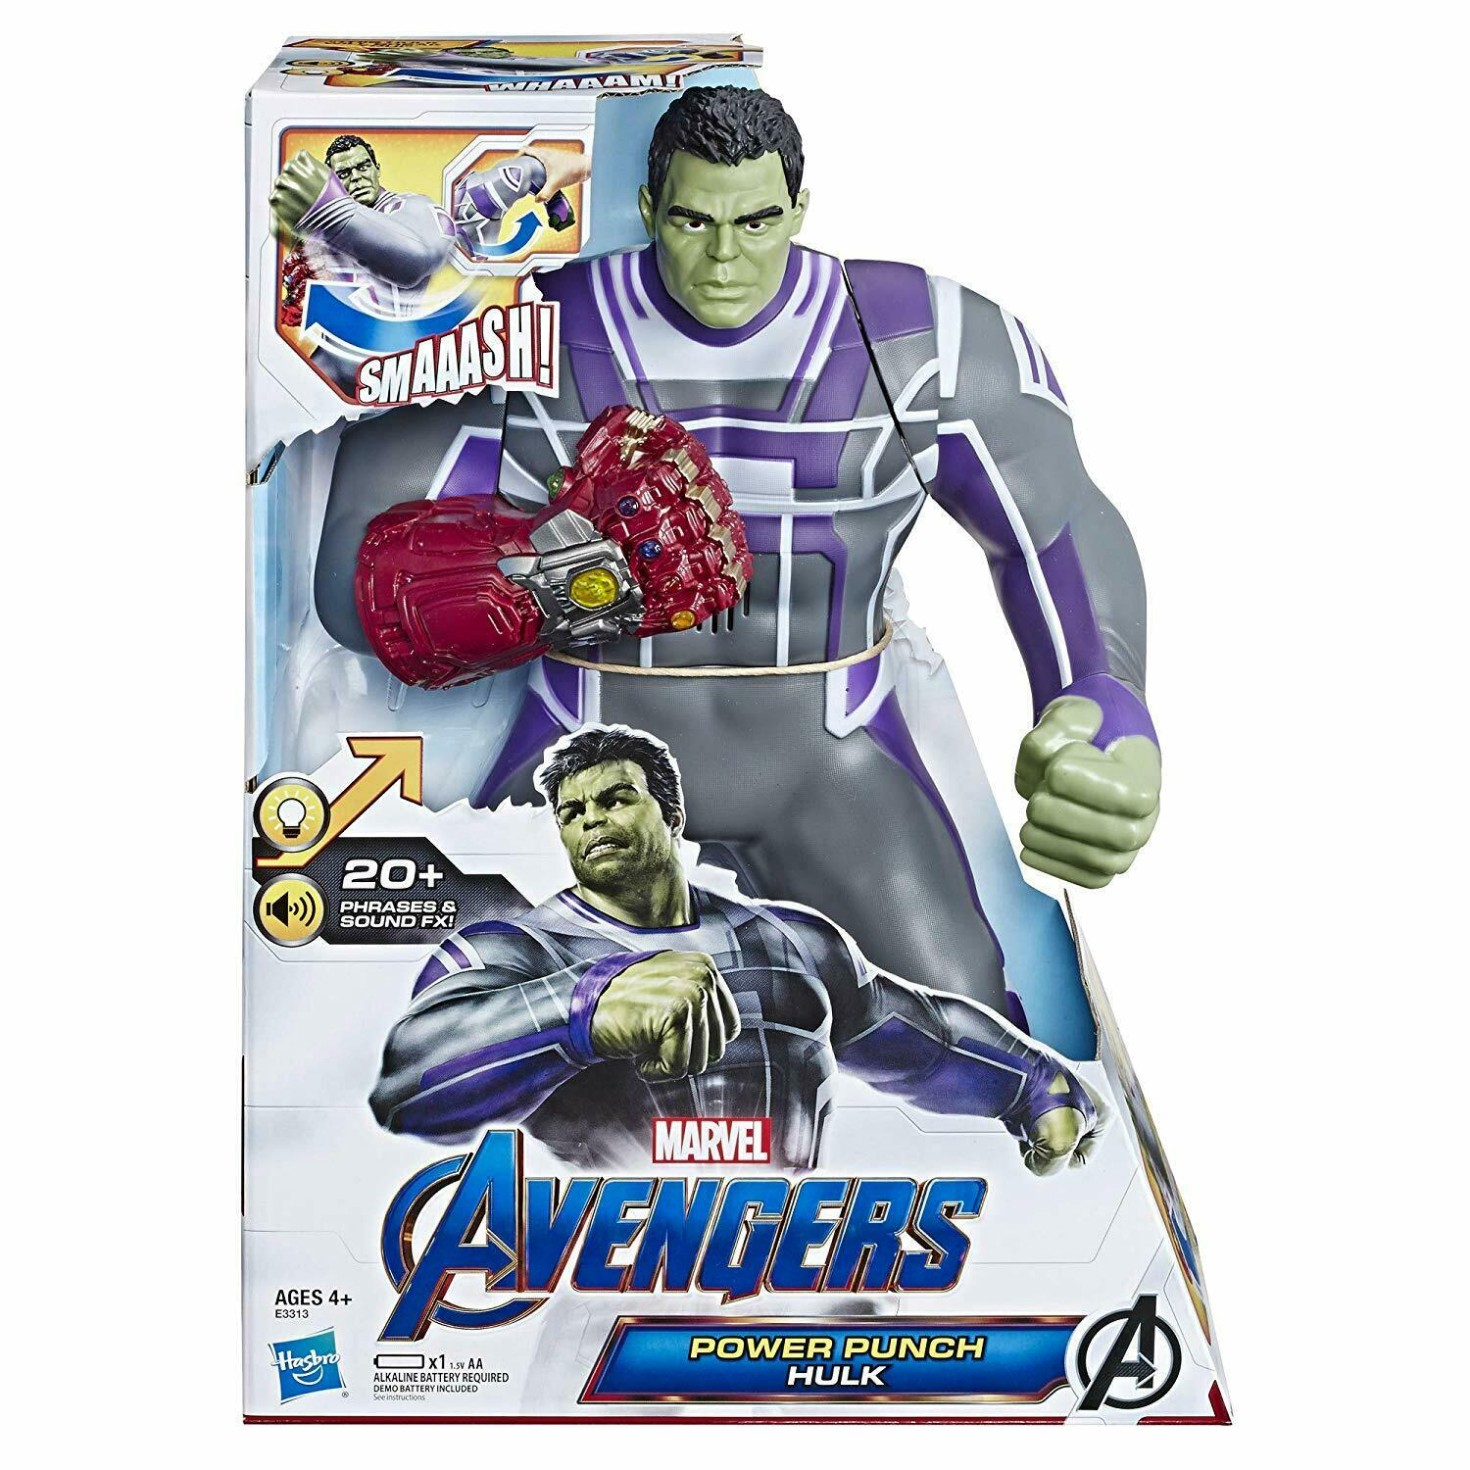 AVENGERS HULK POWER PUNCH